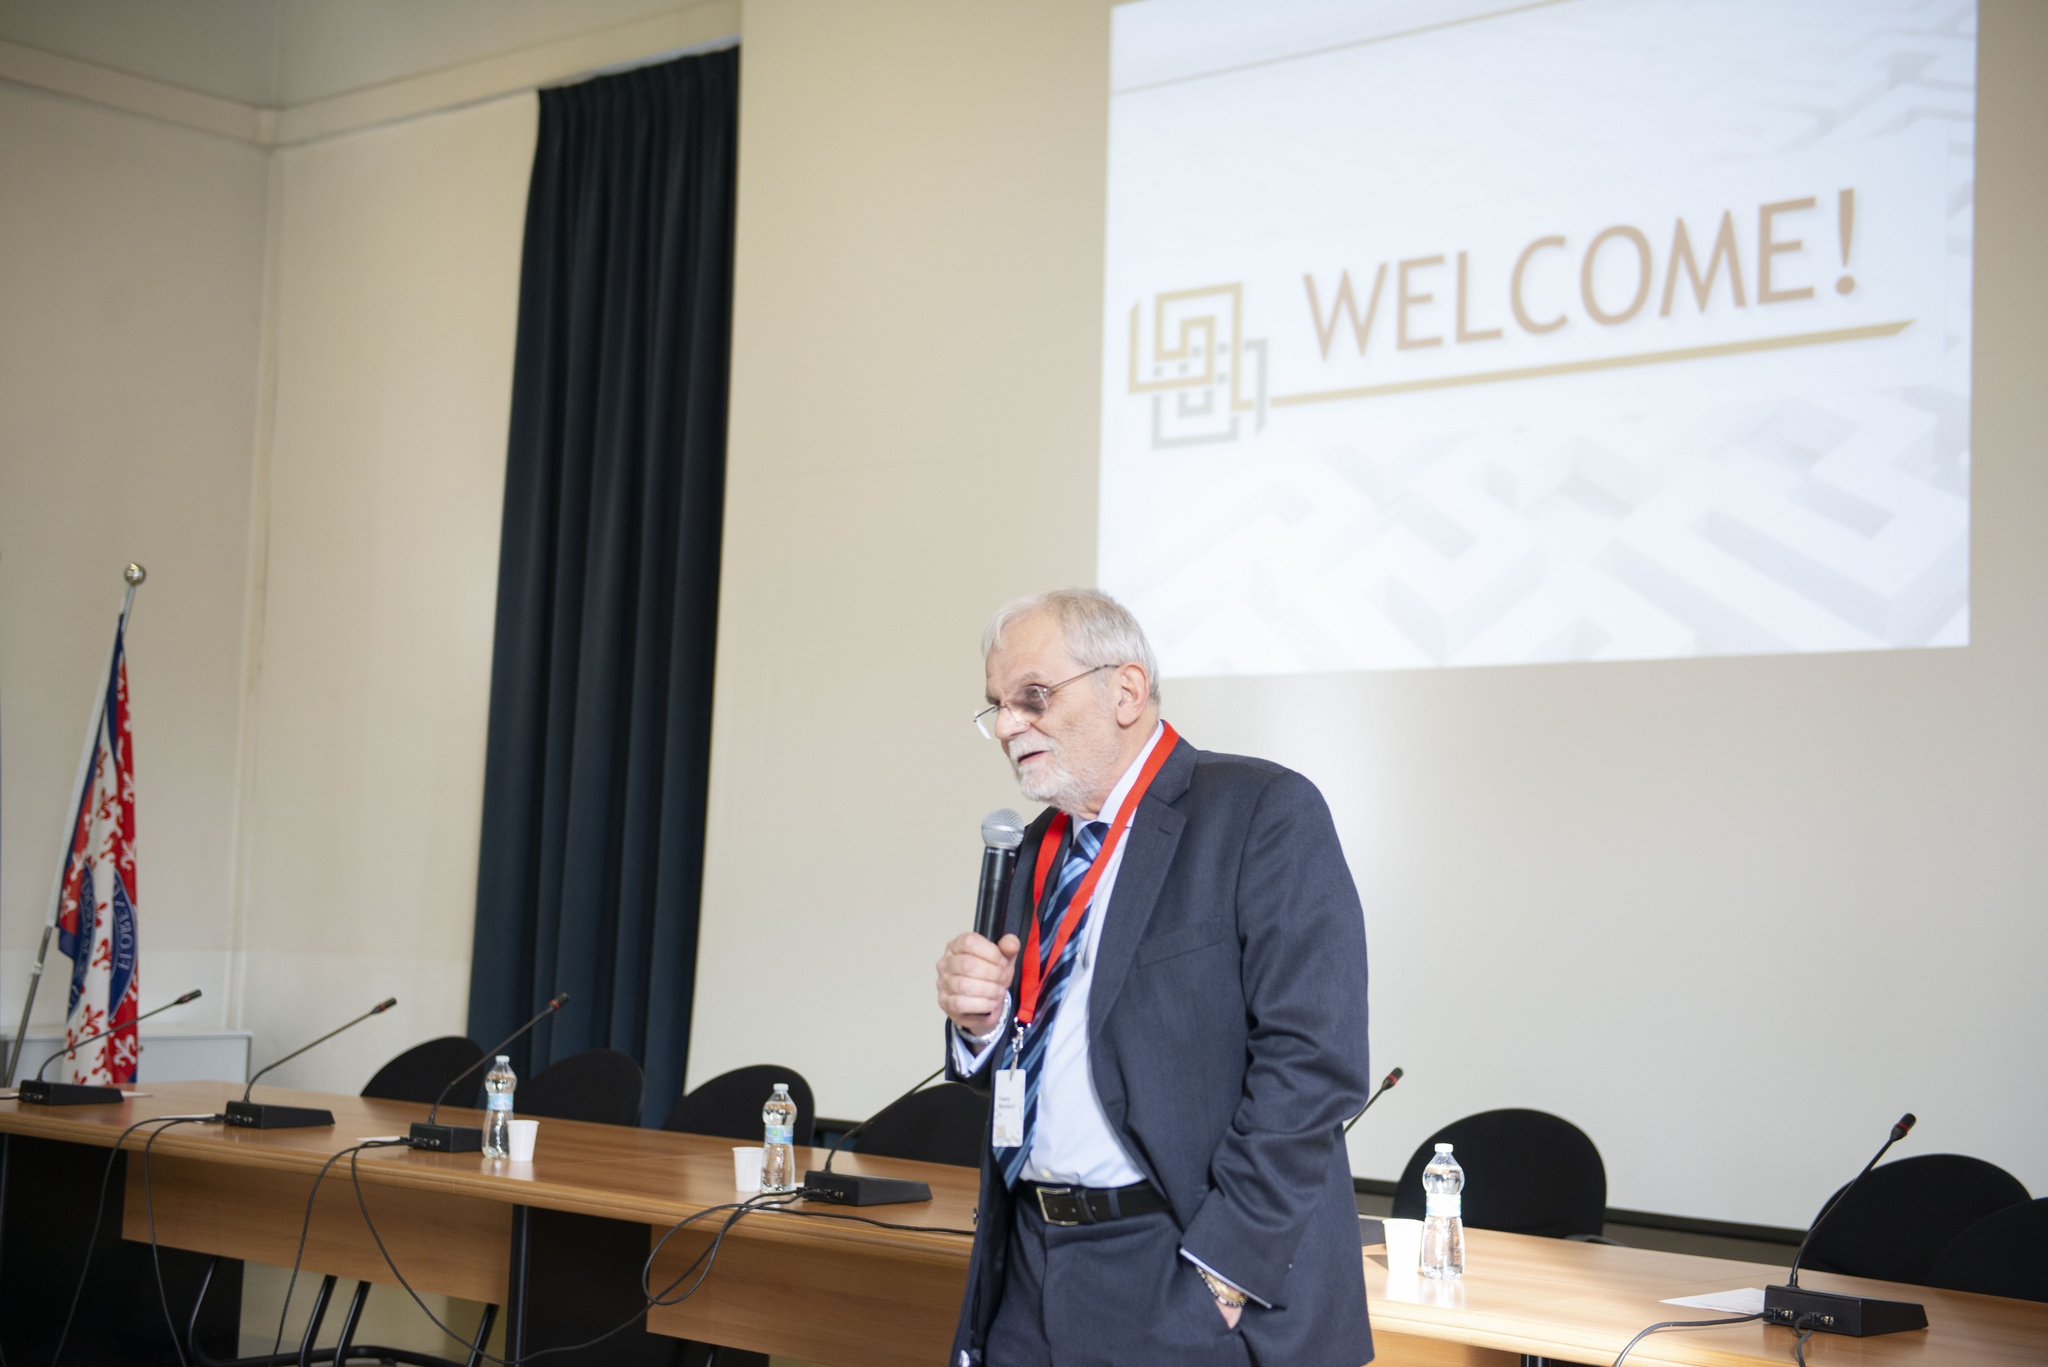 Franco Niccolucci during presentation in Prato